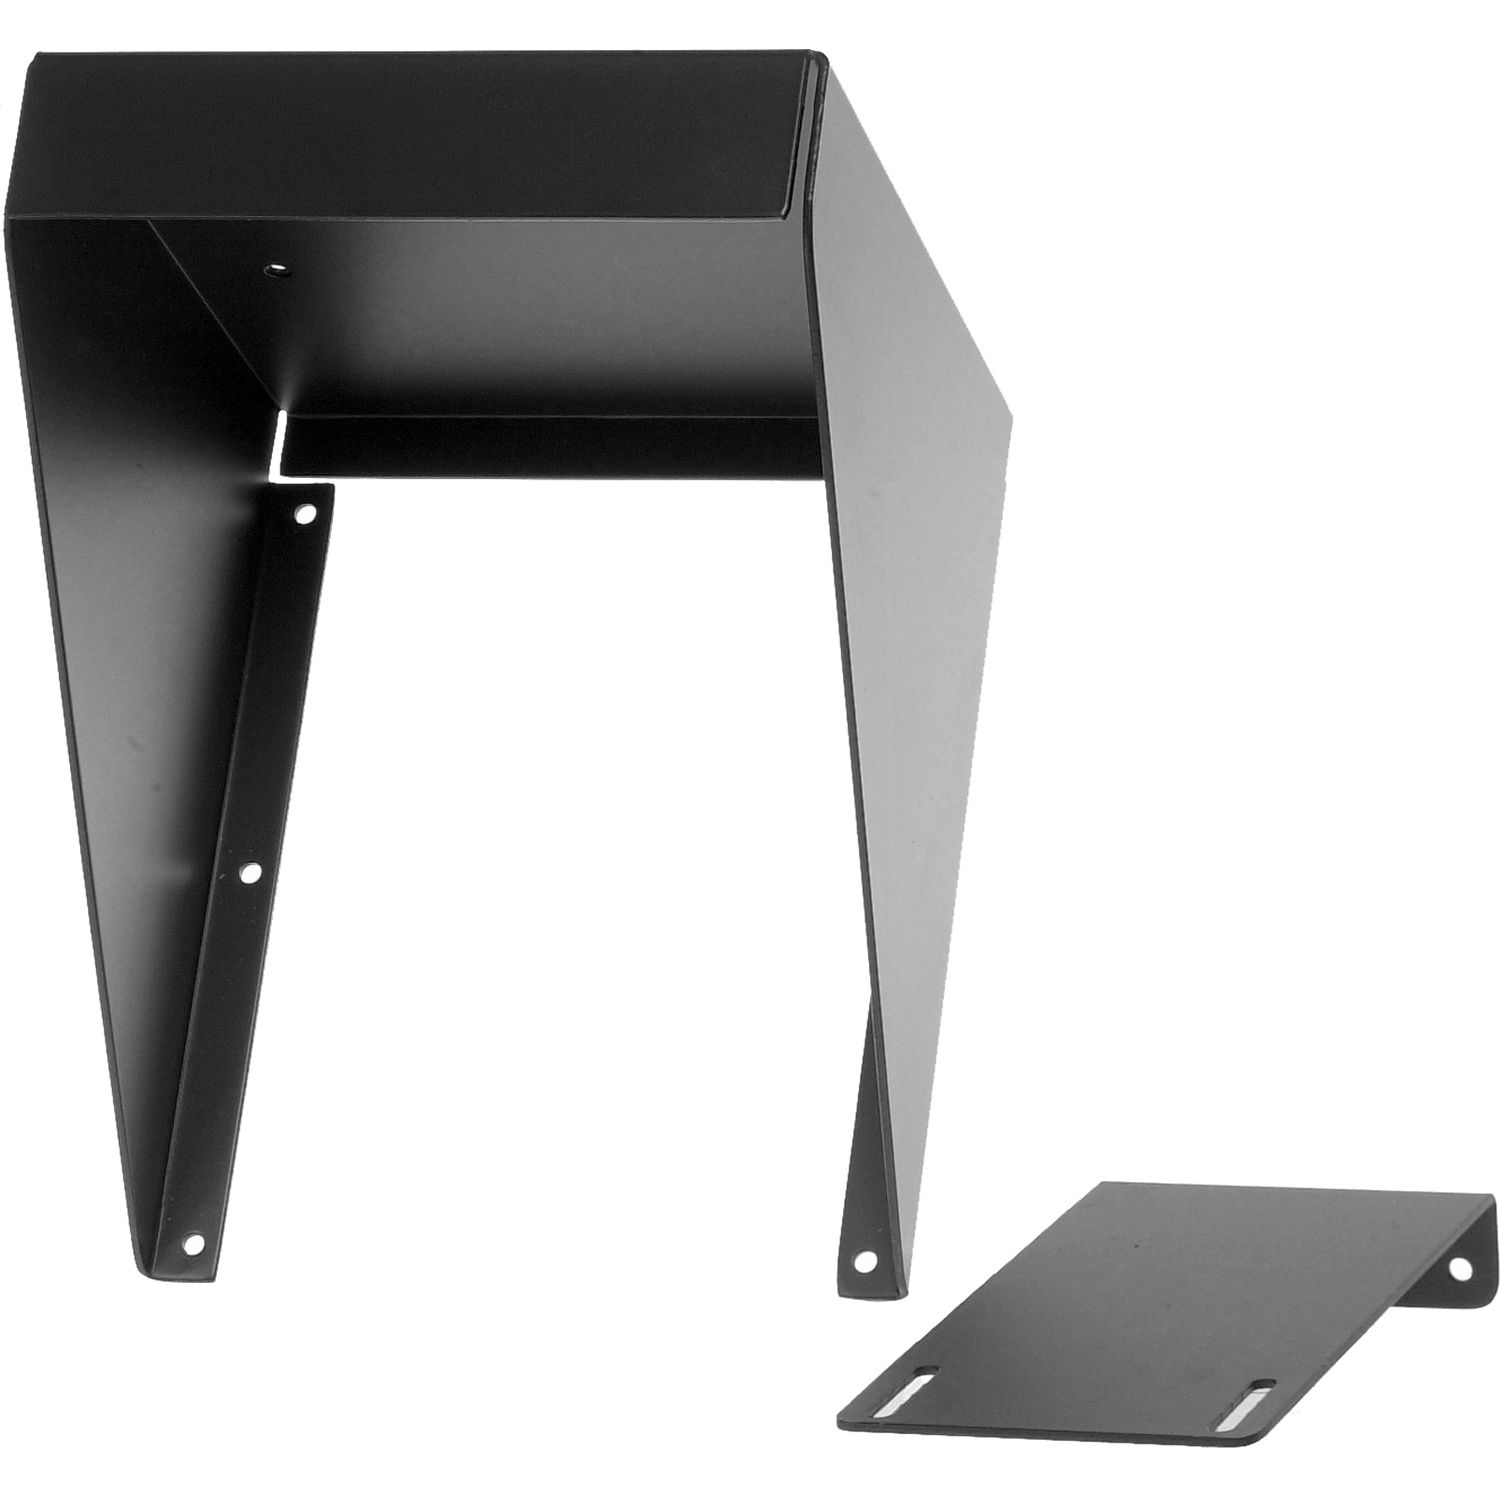 Wall Table Mount for 45V XL Enlarger Chassis